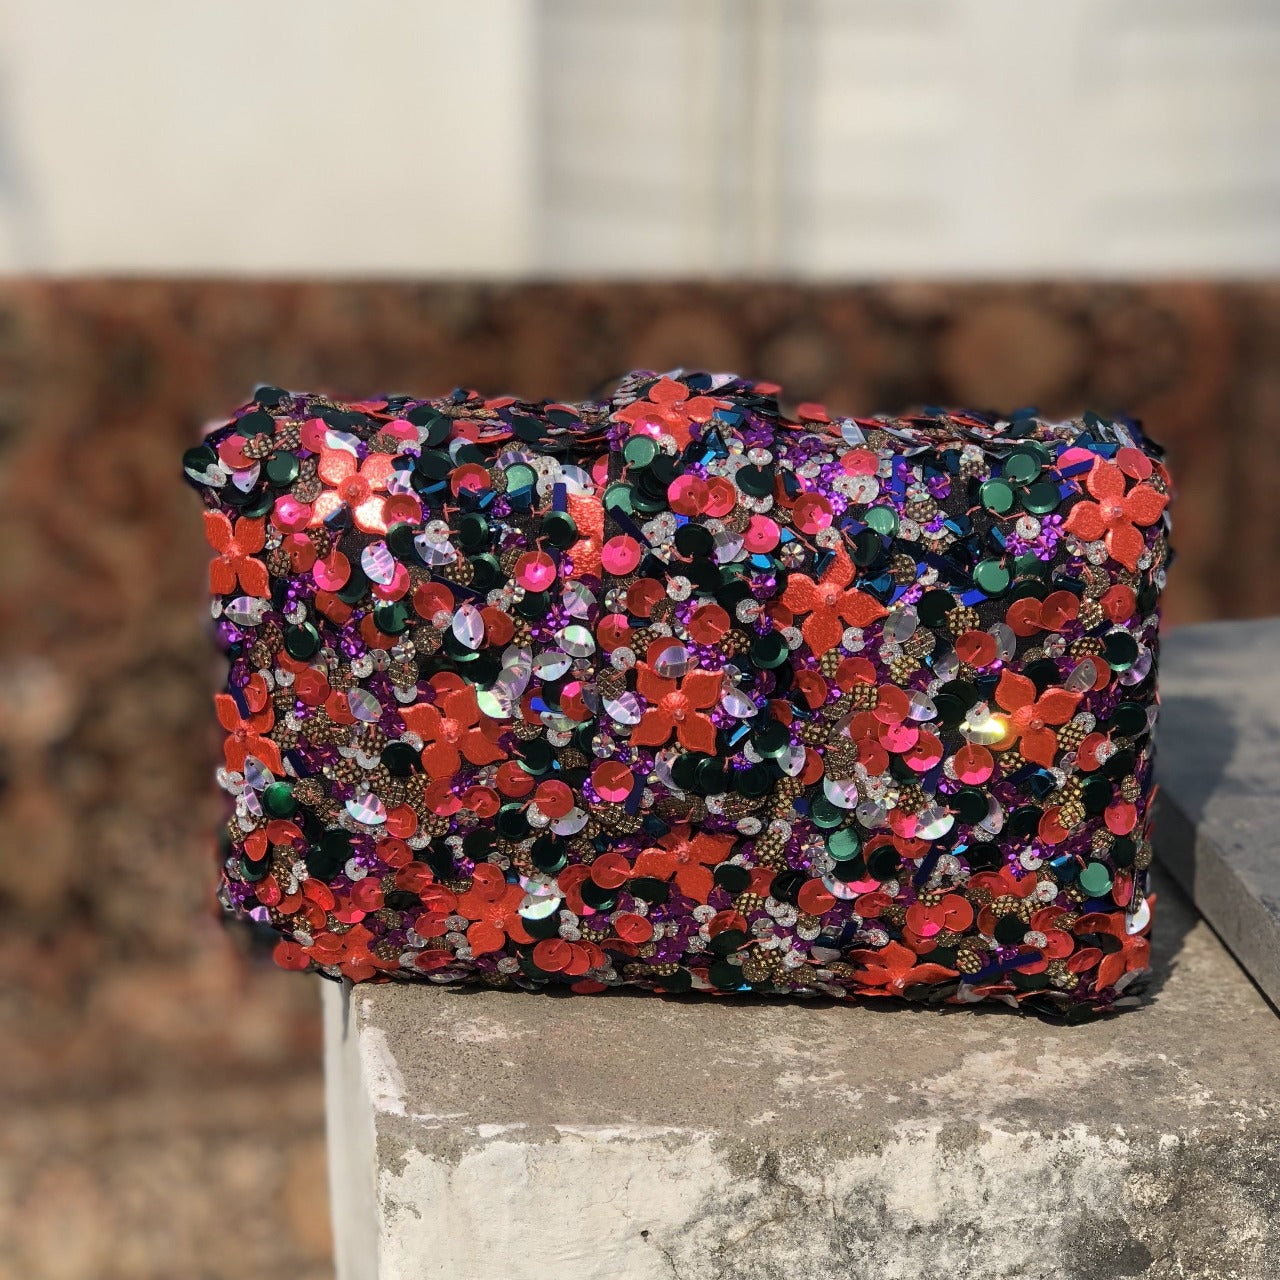 Sequin hand embroidered clutch with a magnetic belt flap as closure, lush velvet lining and a metal chain as handle